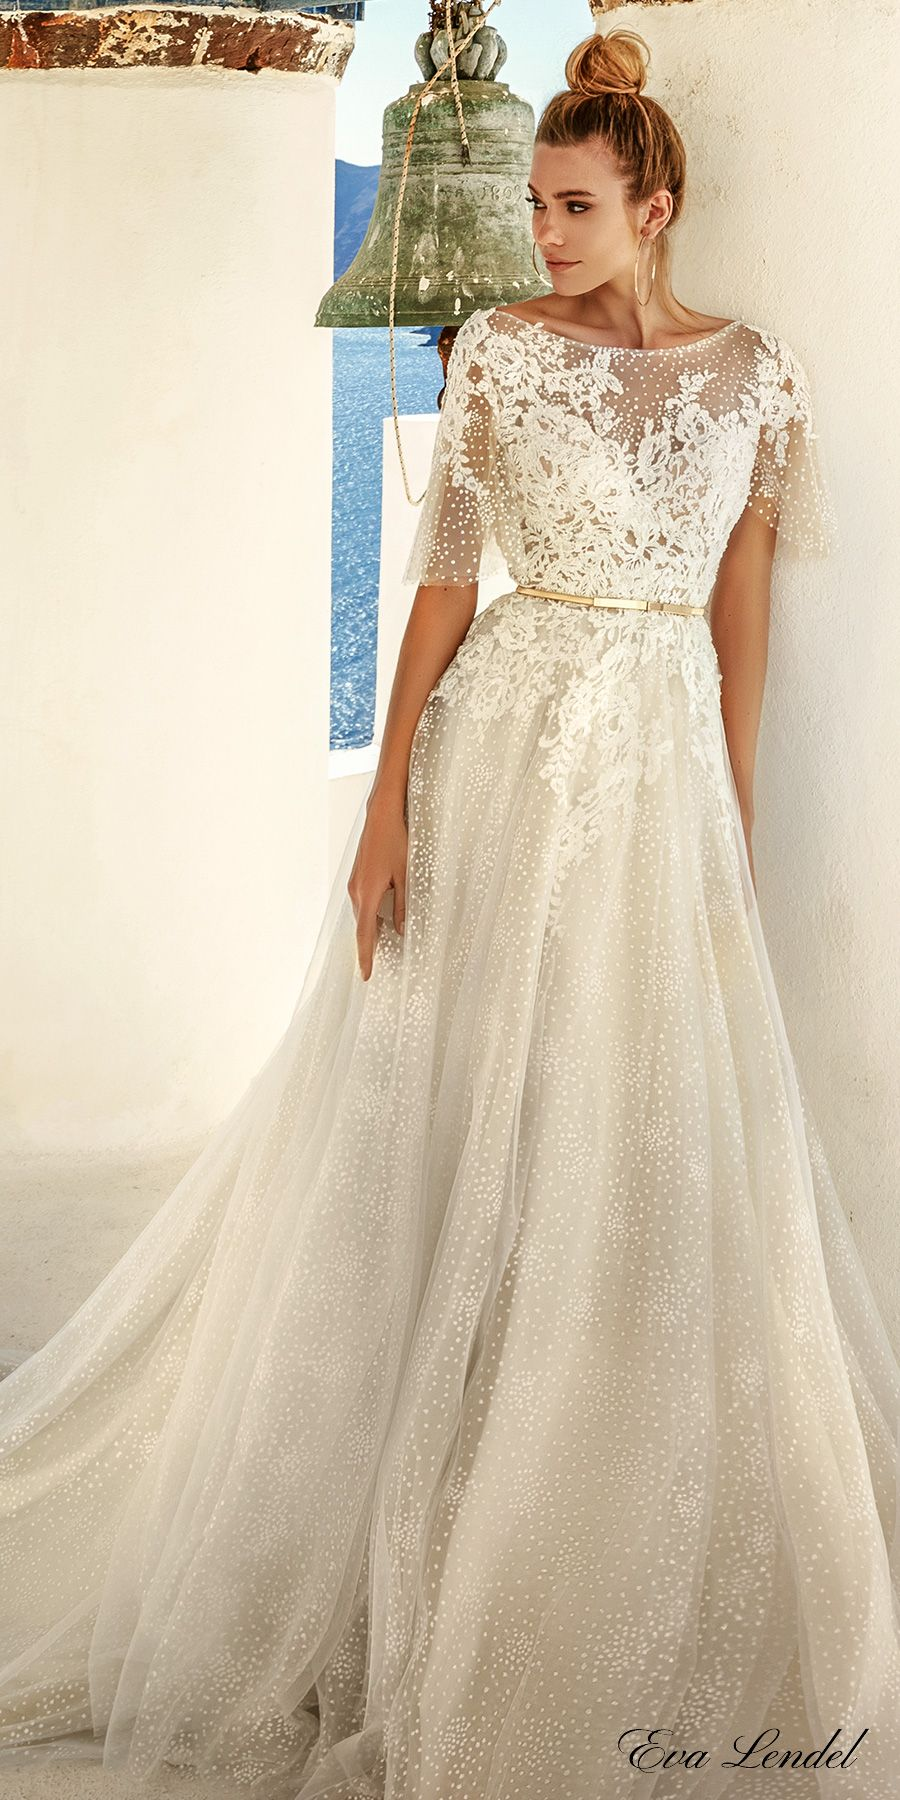 Eva Lendel 2017 bridal half cape sleeves illusion bateau sweetheart  neckline heavily embellished bodice romantic a line wedding dress open v  low back chapel ... fde60c2554a3c